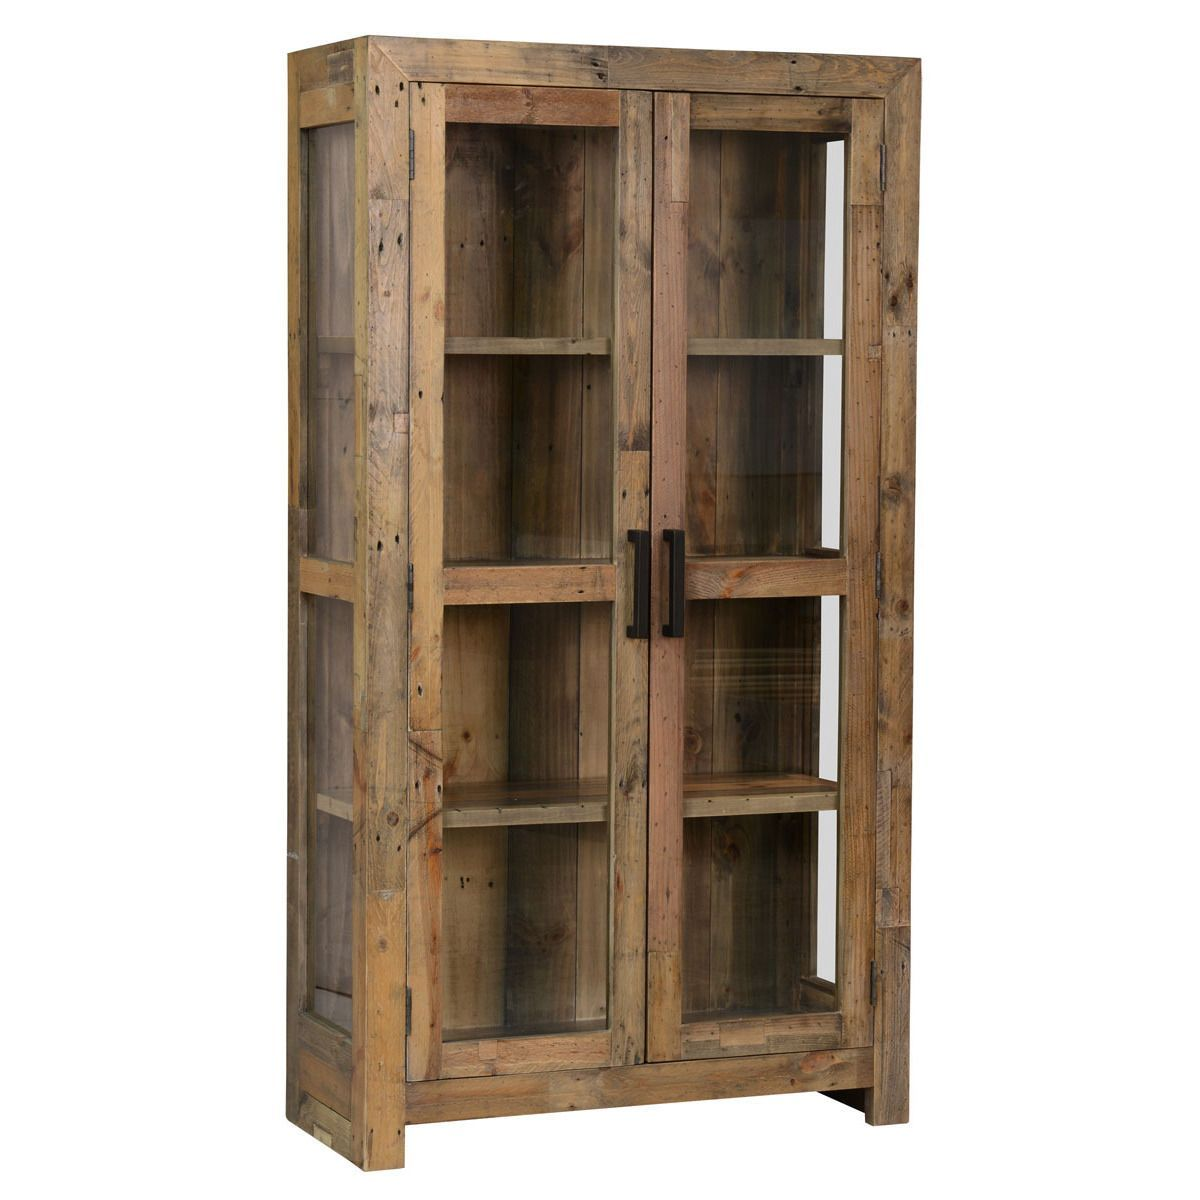 Add A Touch Of Rustic Charm To Your Home With This Clic Two Door Curio Cabinetspine